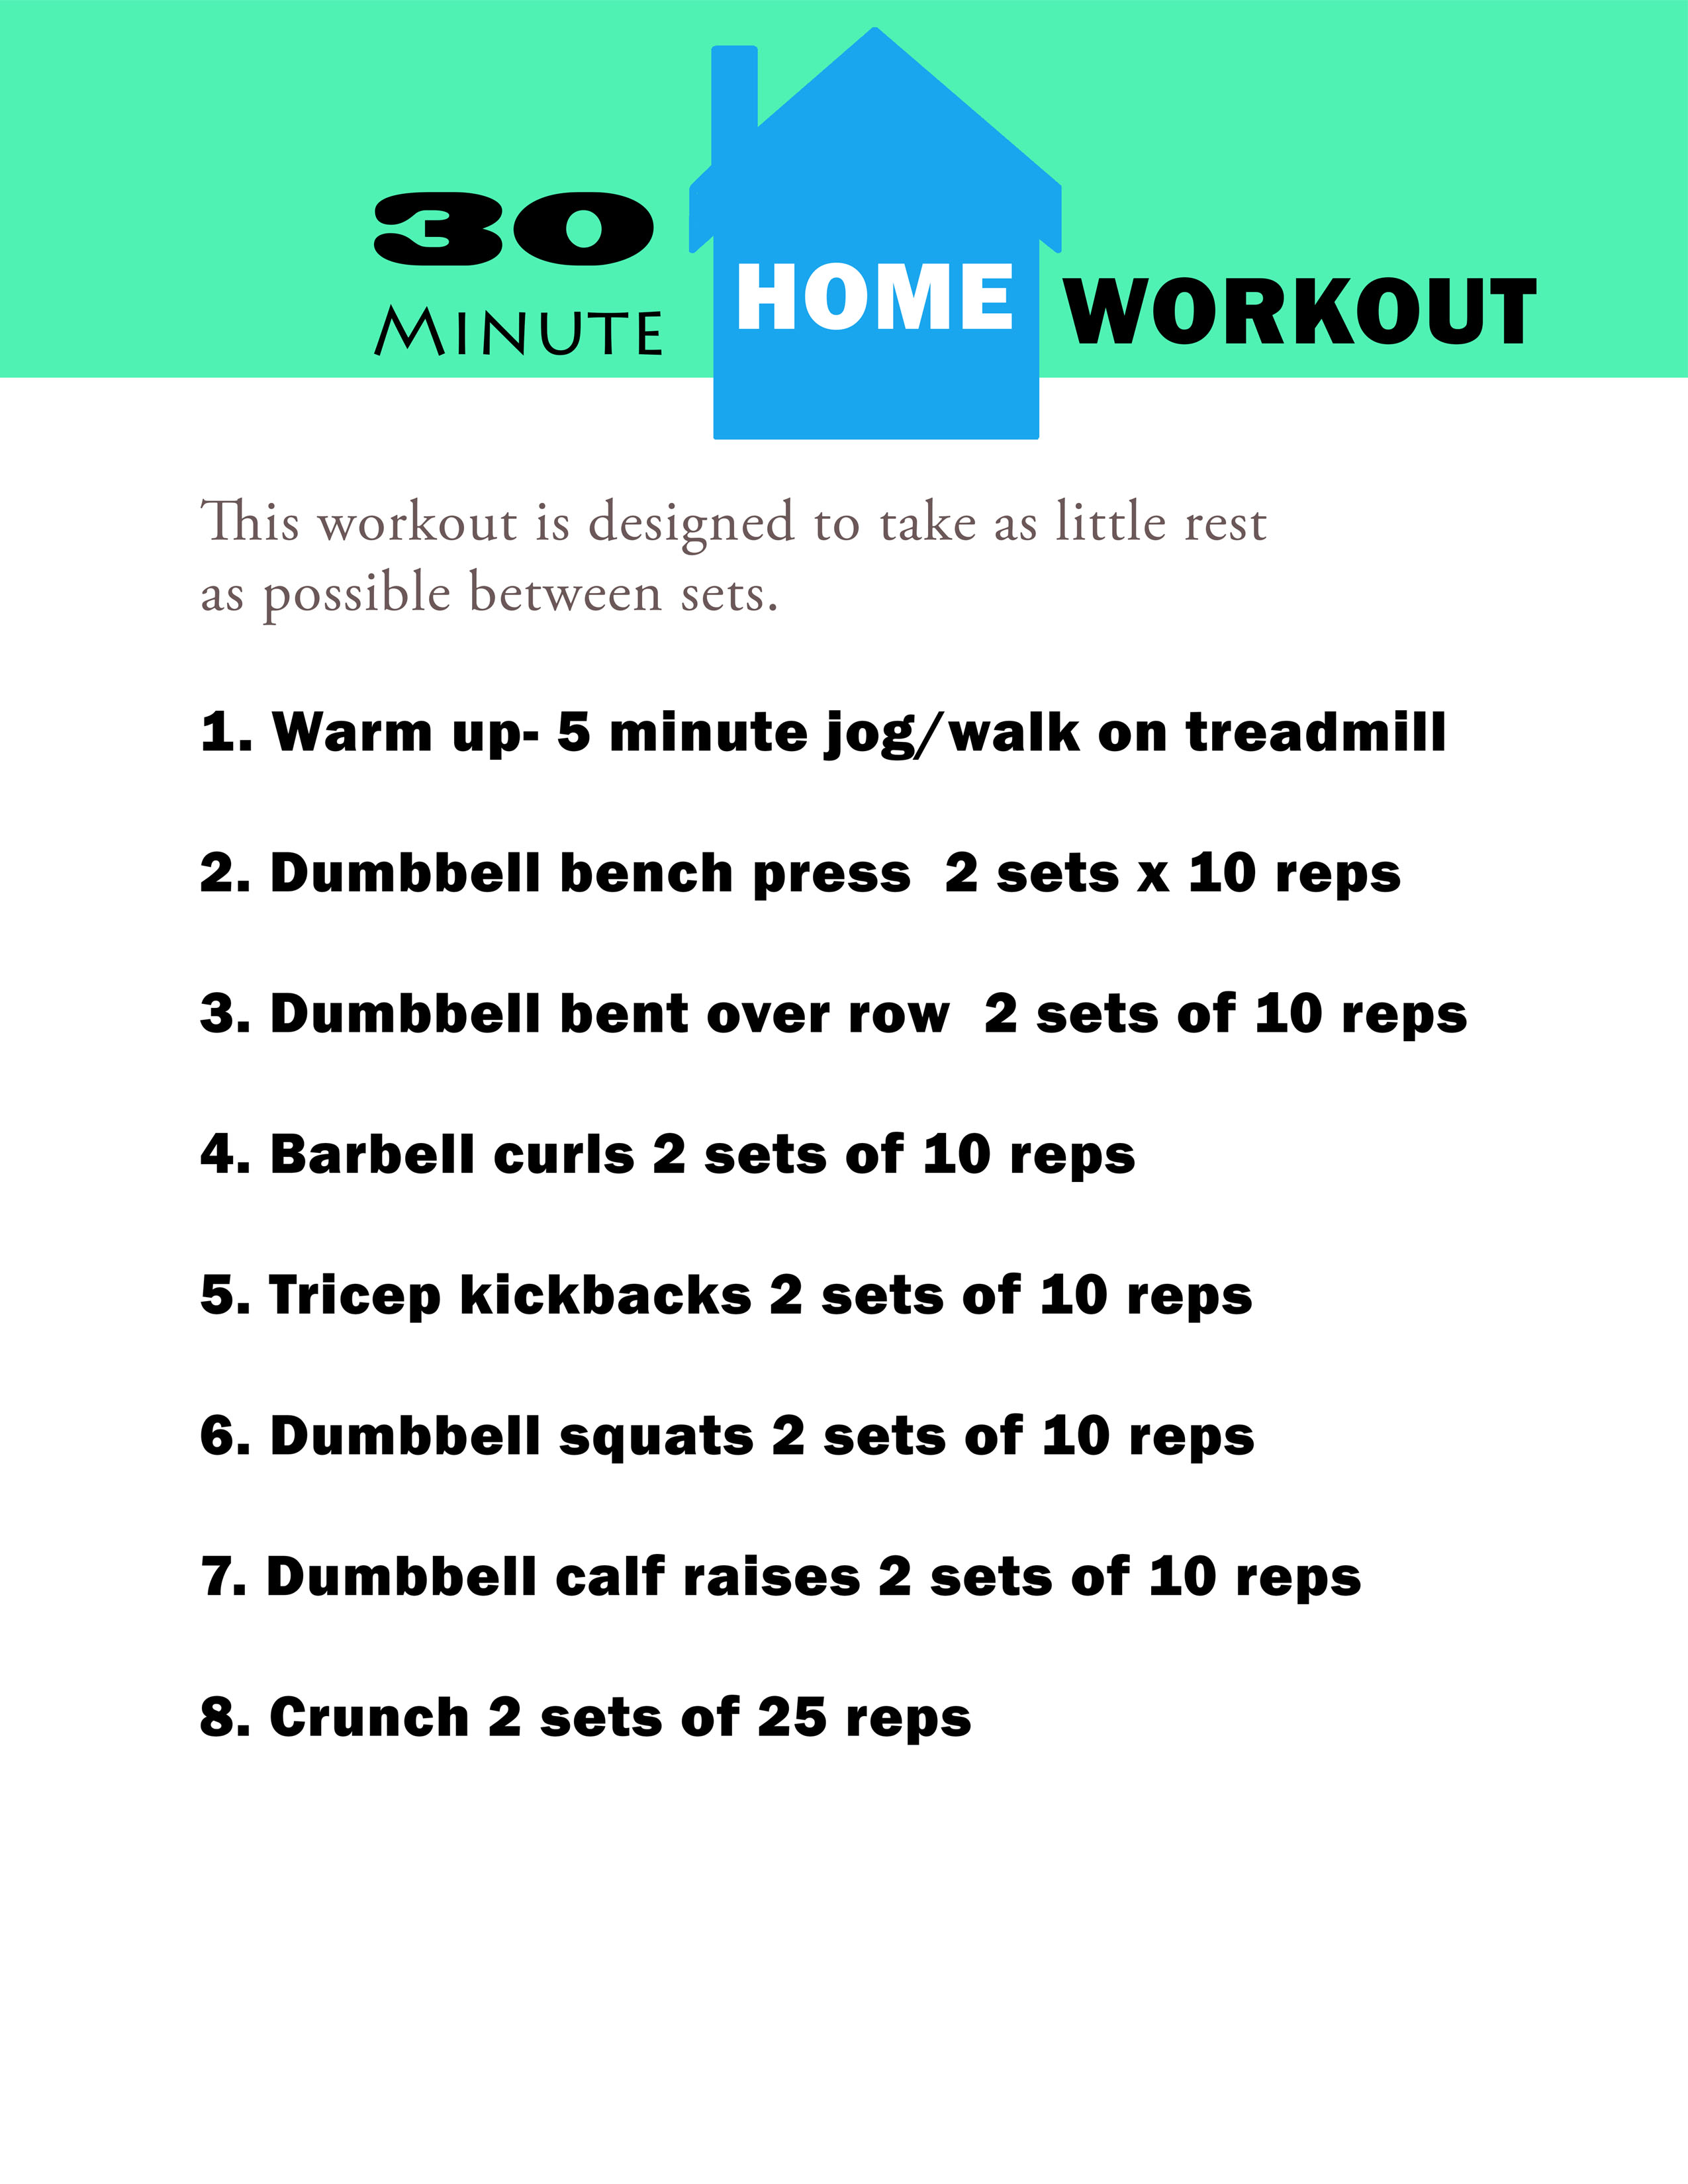 30 Minute Home Workout You Can Download And Print Cardio